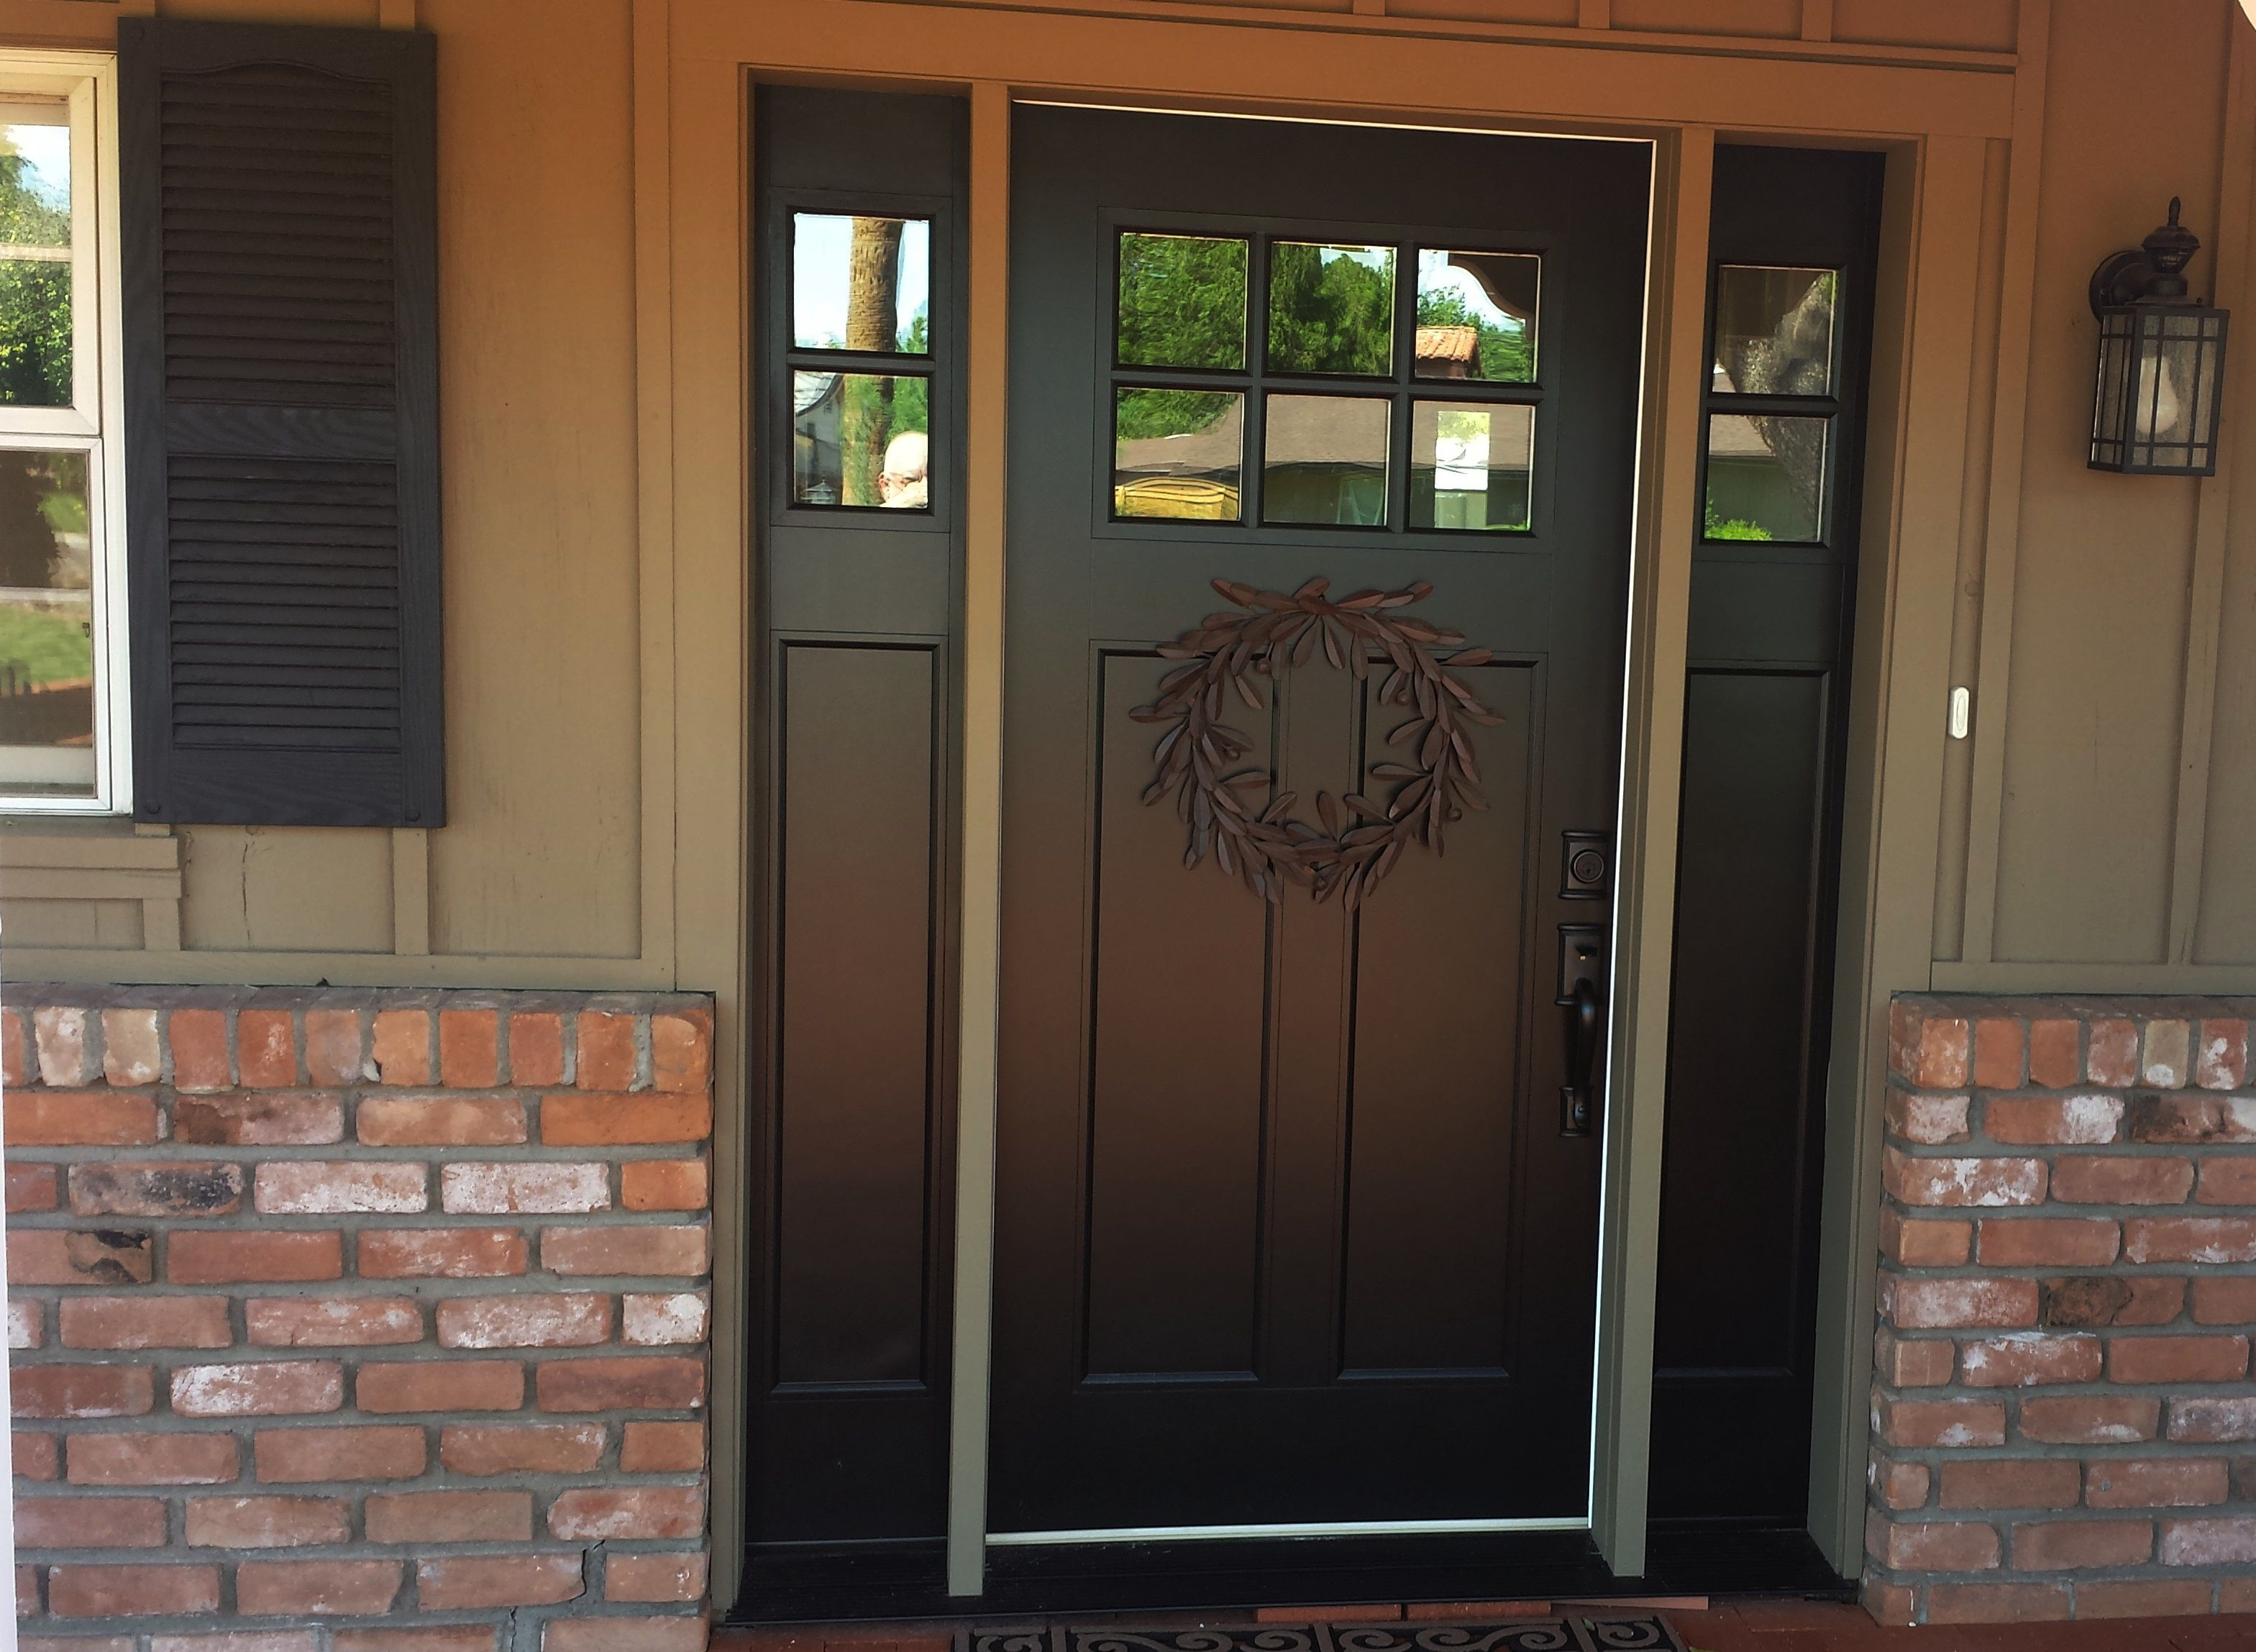 Replacing Mahogany Door With Fiberglass Door With Two Sidelights My Work2 Pinterest Doors